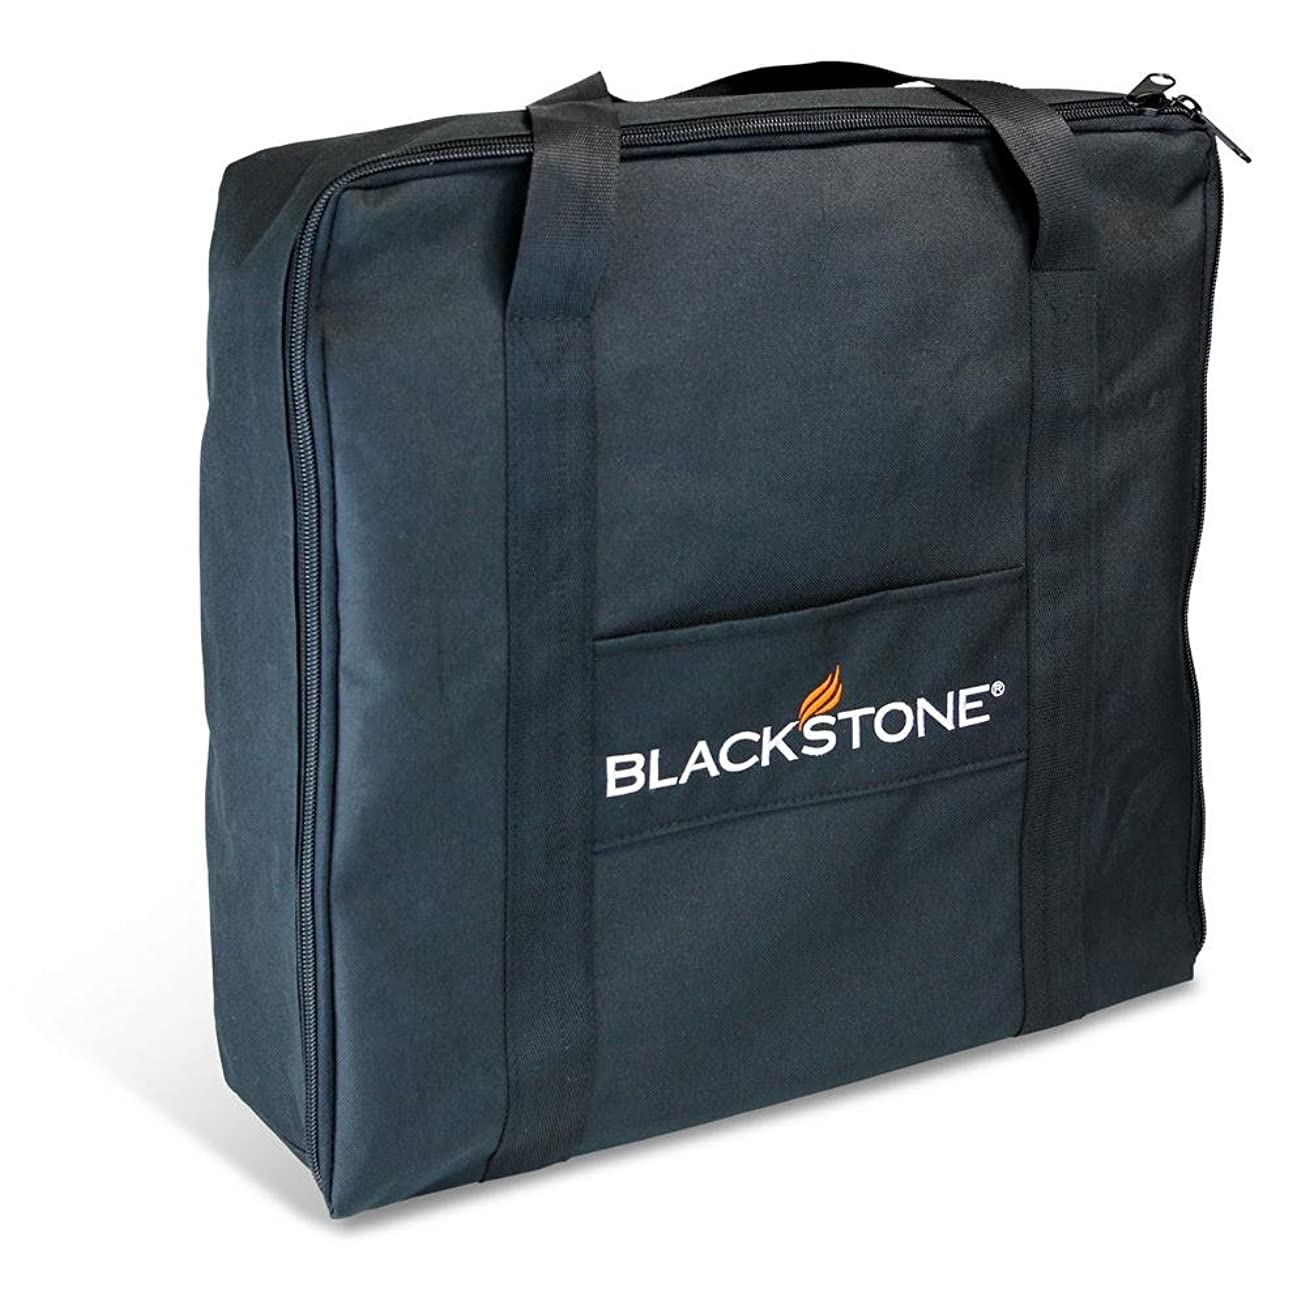 Blackstone Heavy Duty Carry Bag and Cover Set for 17 in. Table Top Griddle (2-piece set) mazepozshcgd7